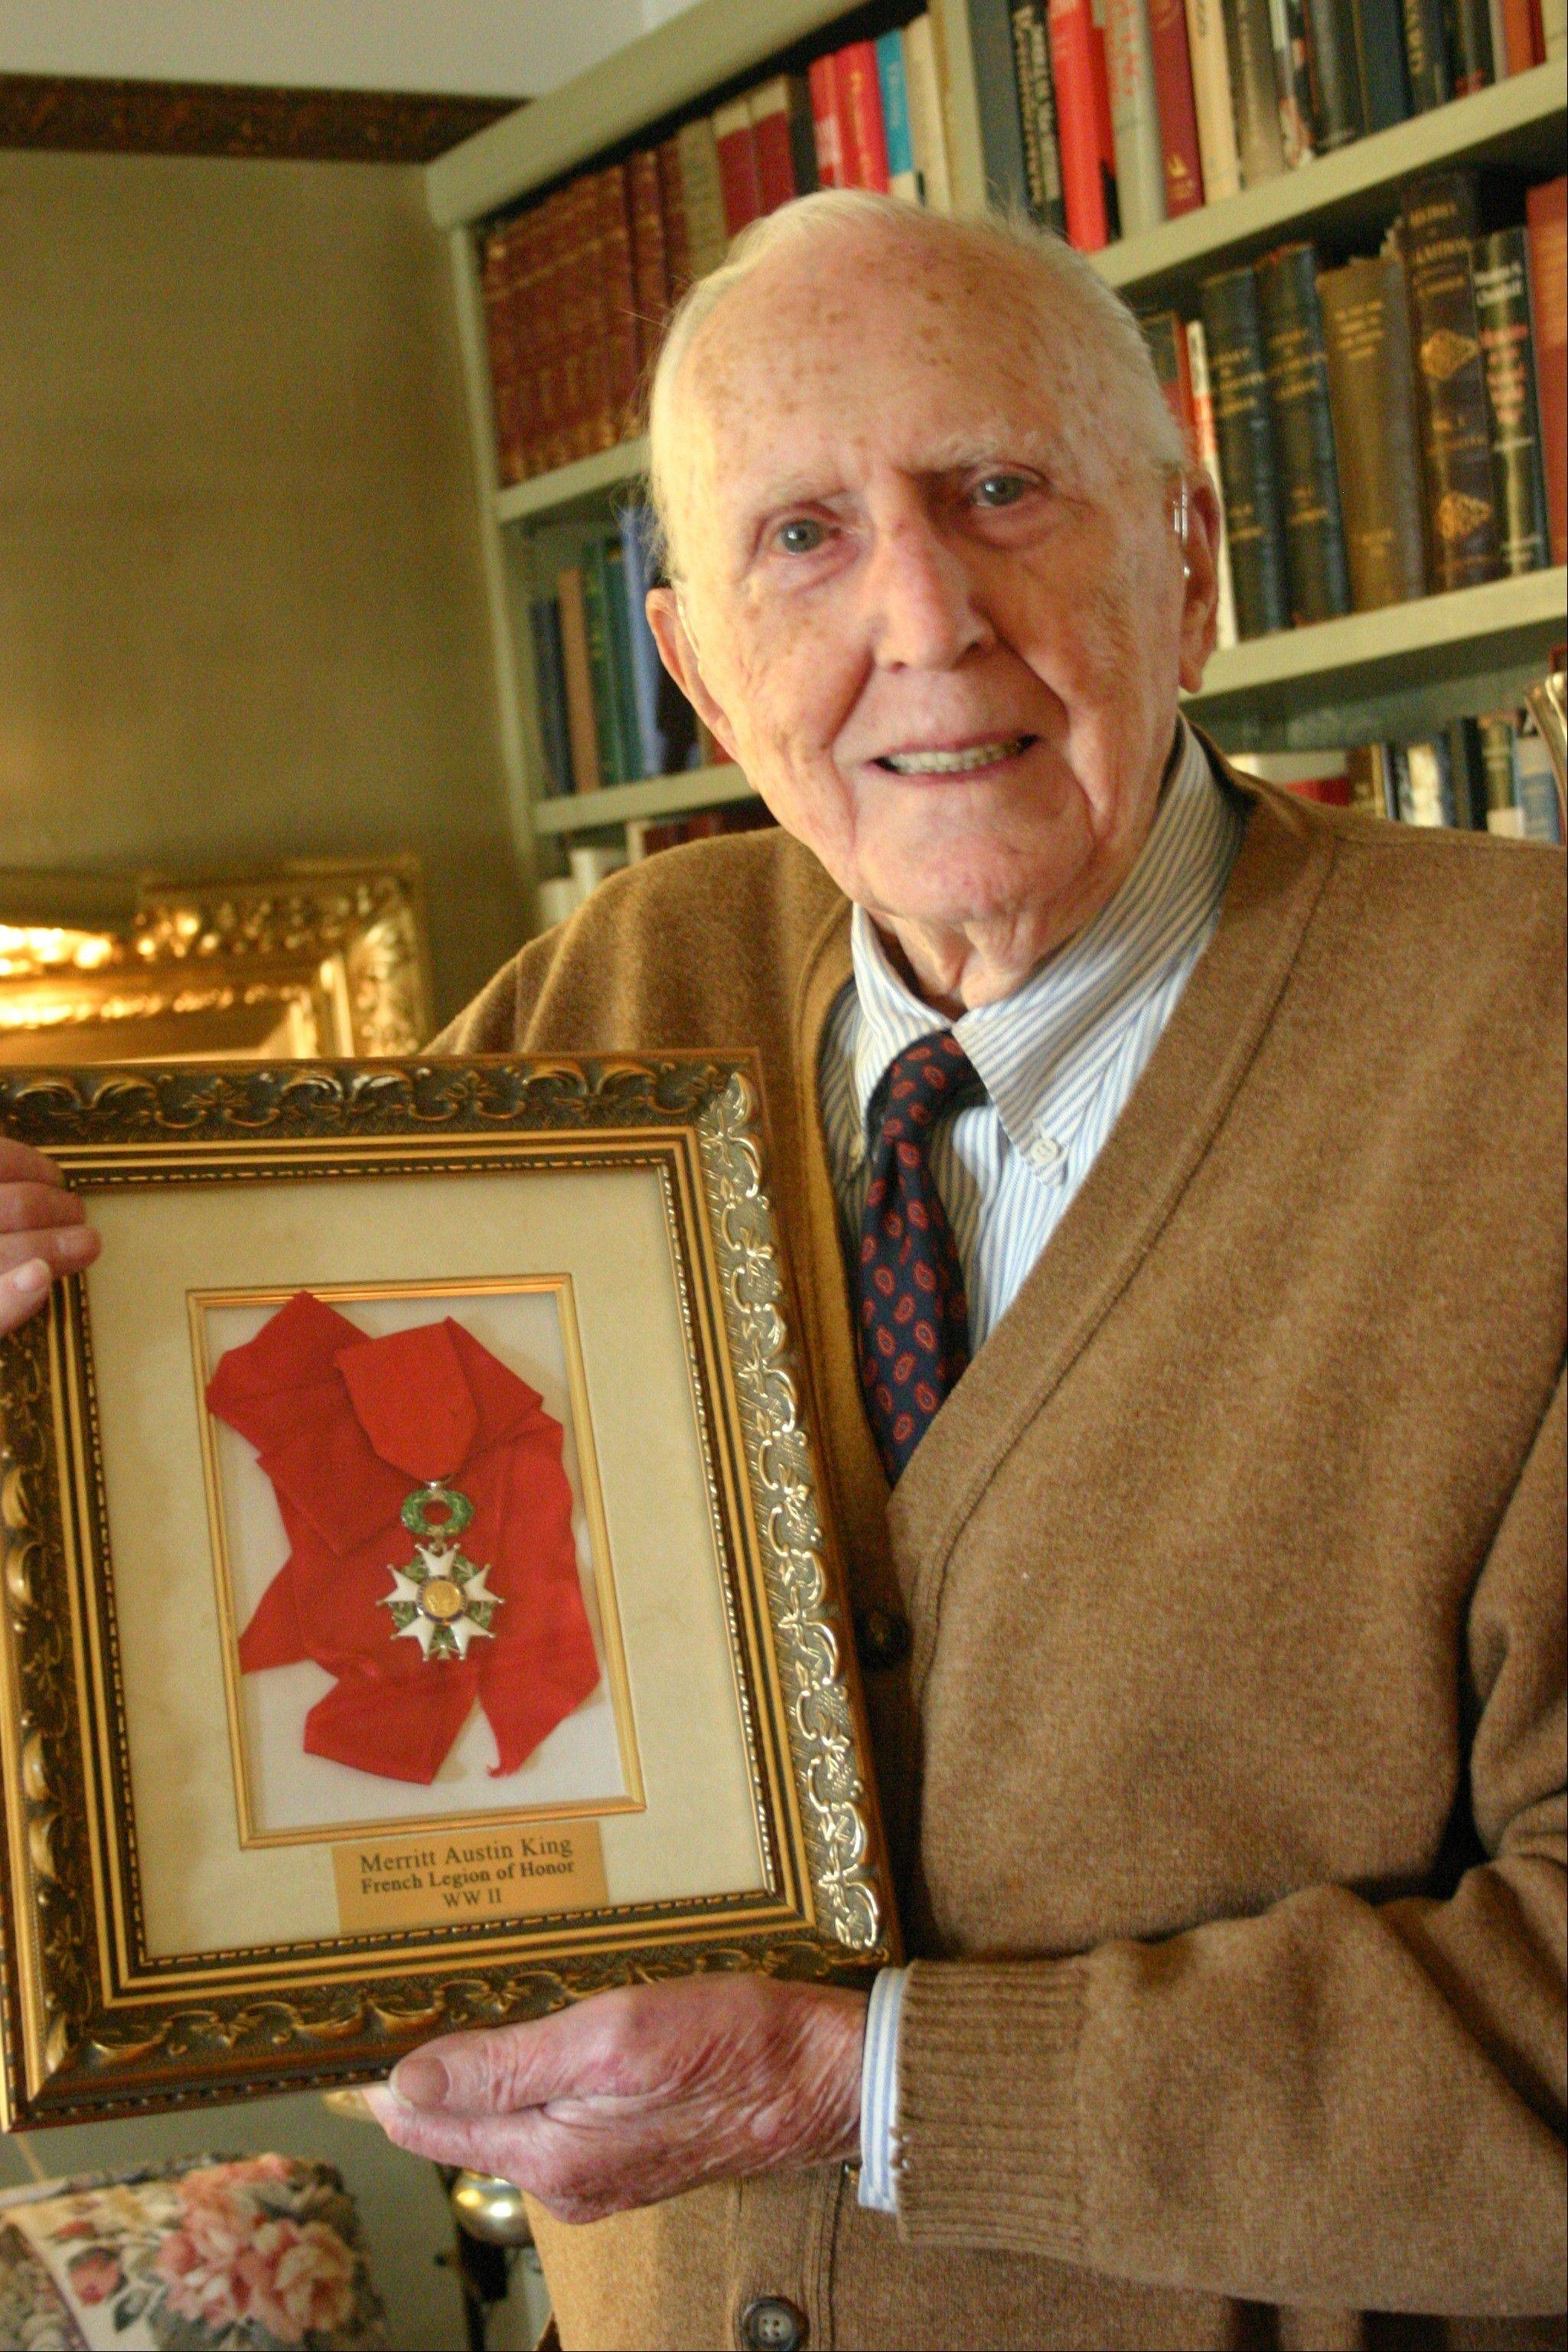 Merritt King of Geneva with the French Legion of Honor medal, which was bestowed on him in 2009. He landed with the Allies on Omaha Beach in the third day of the famous 1944 invasion.